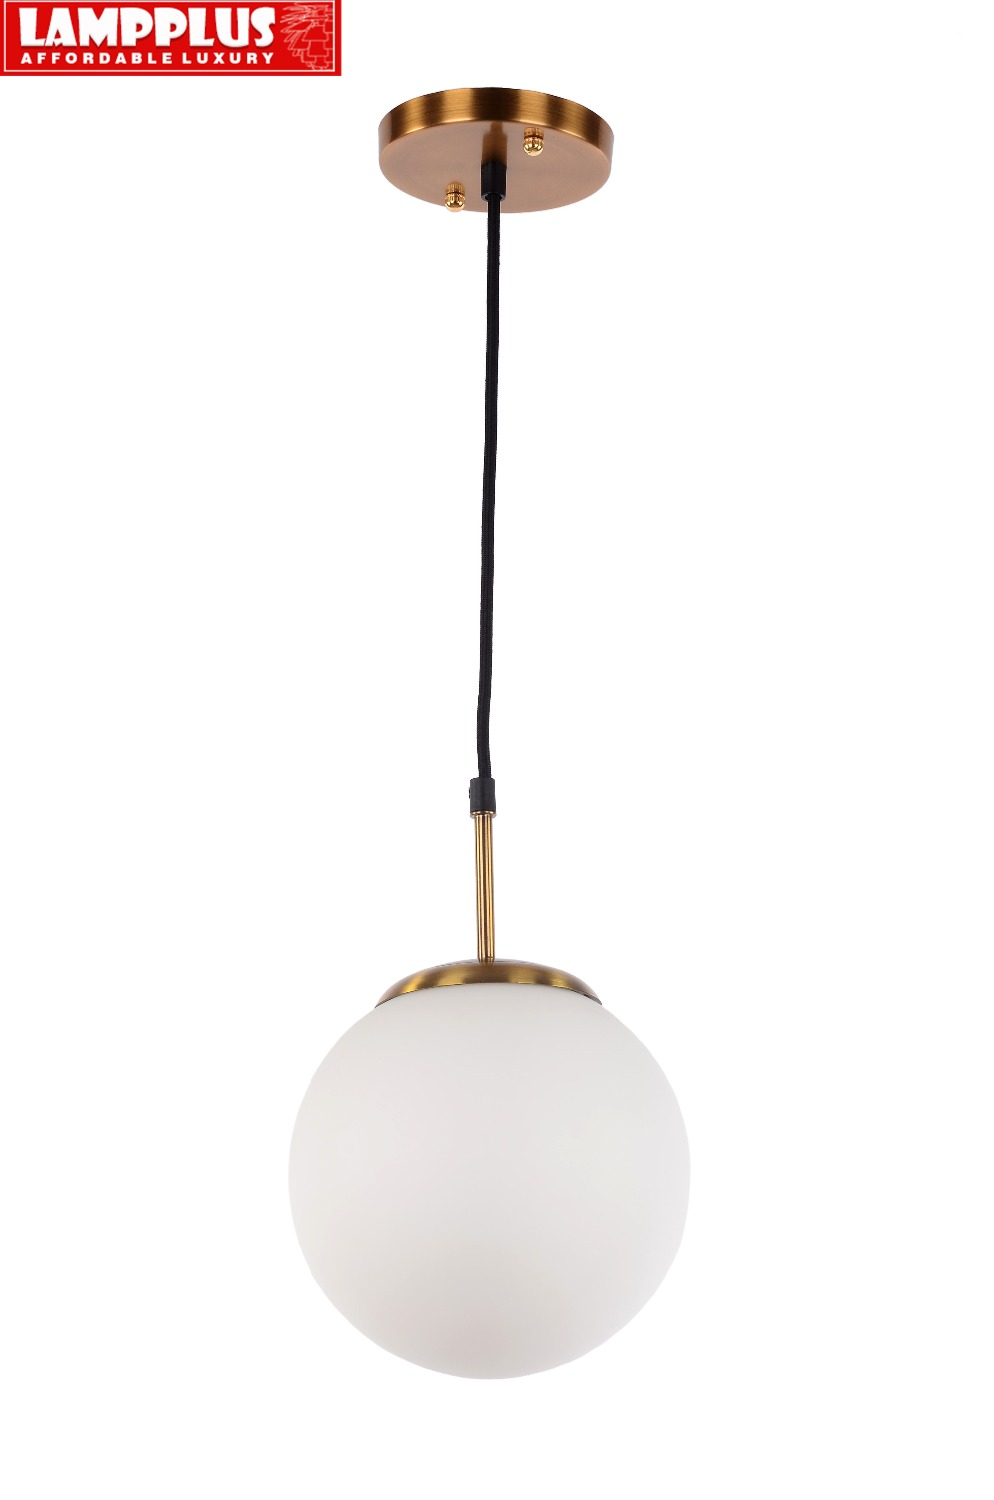 Lampplus Modern Simple Golden color Frosted glass ball lampshade Pendant light Droplight Ceiling lamp for bedroom living room